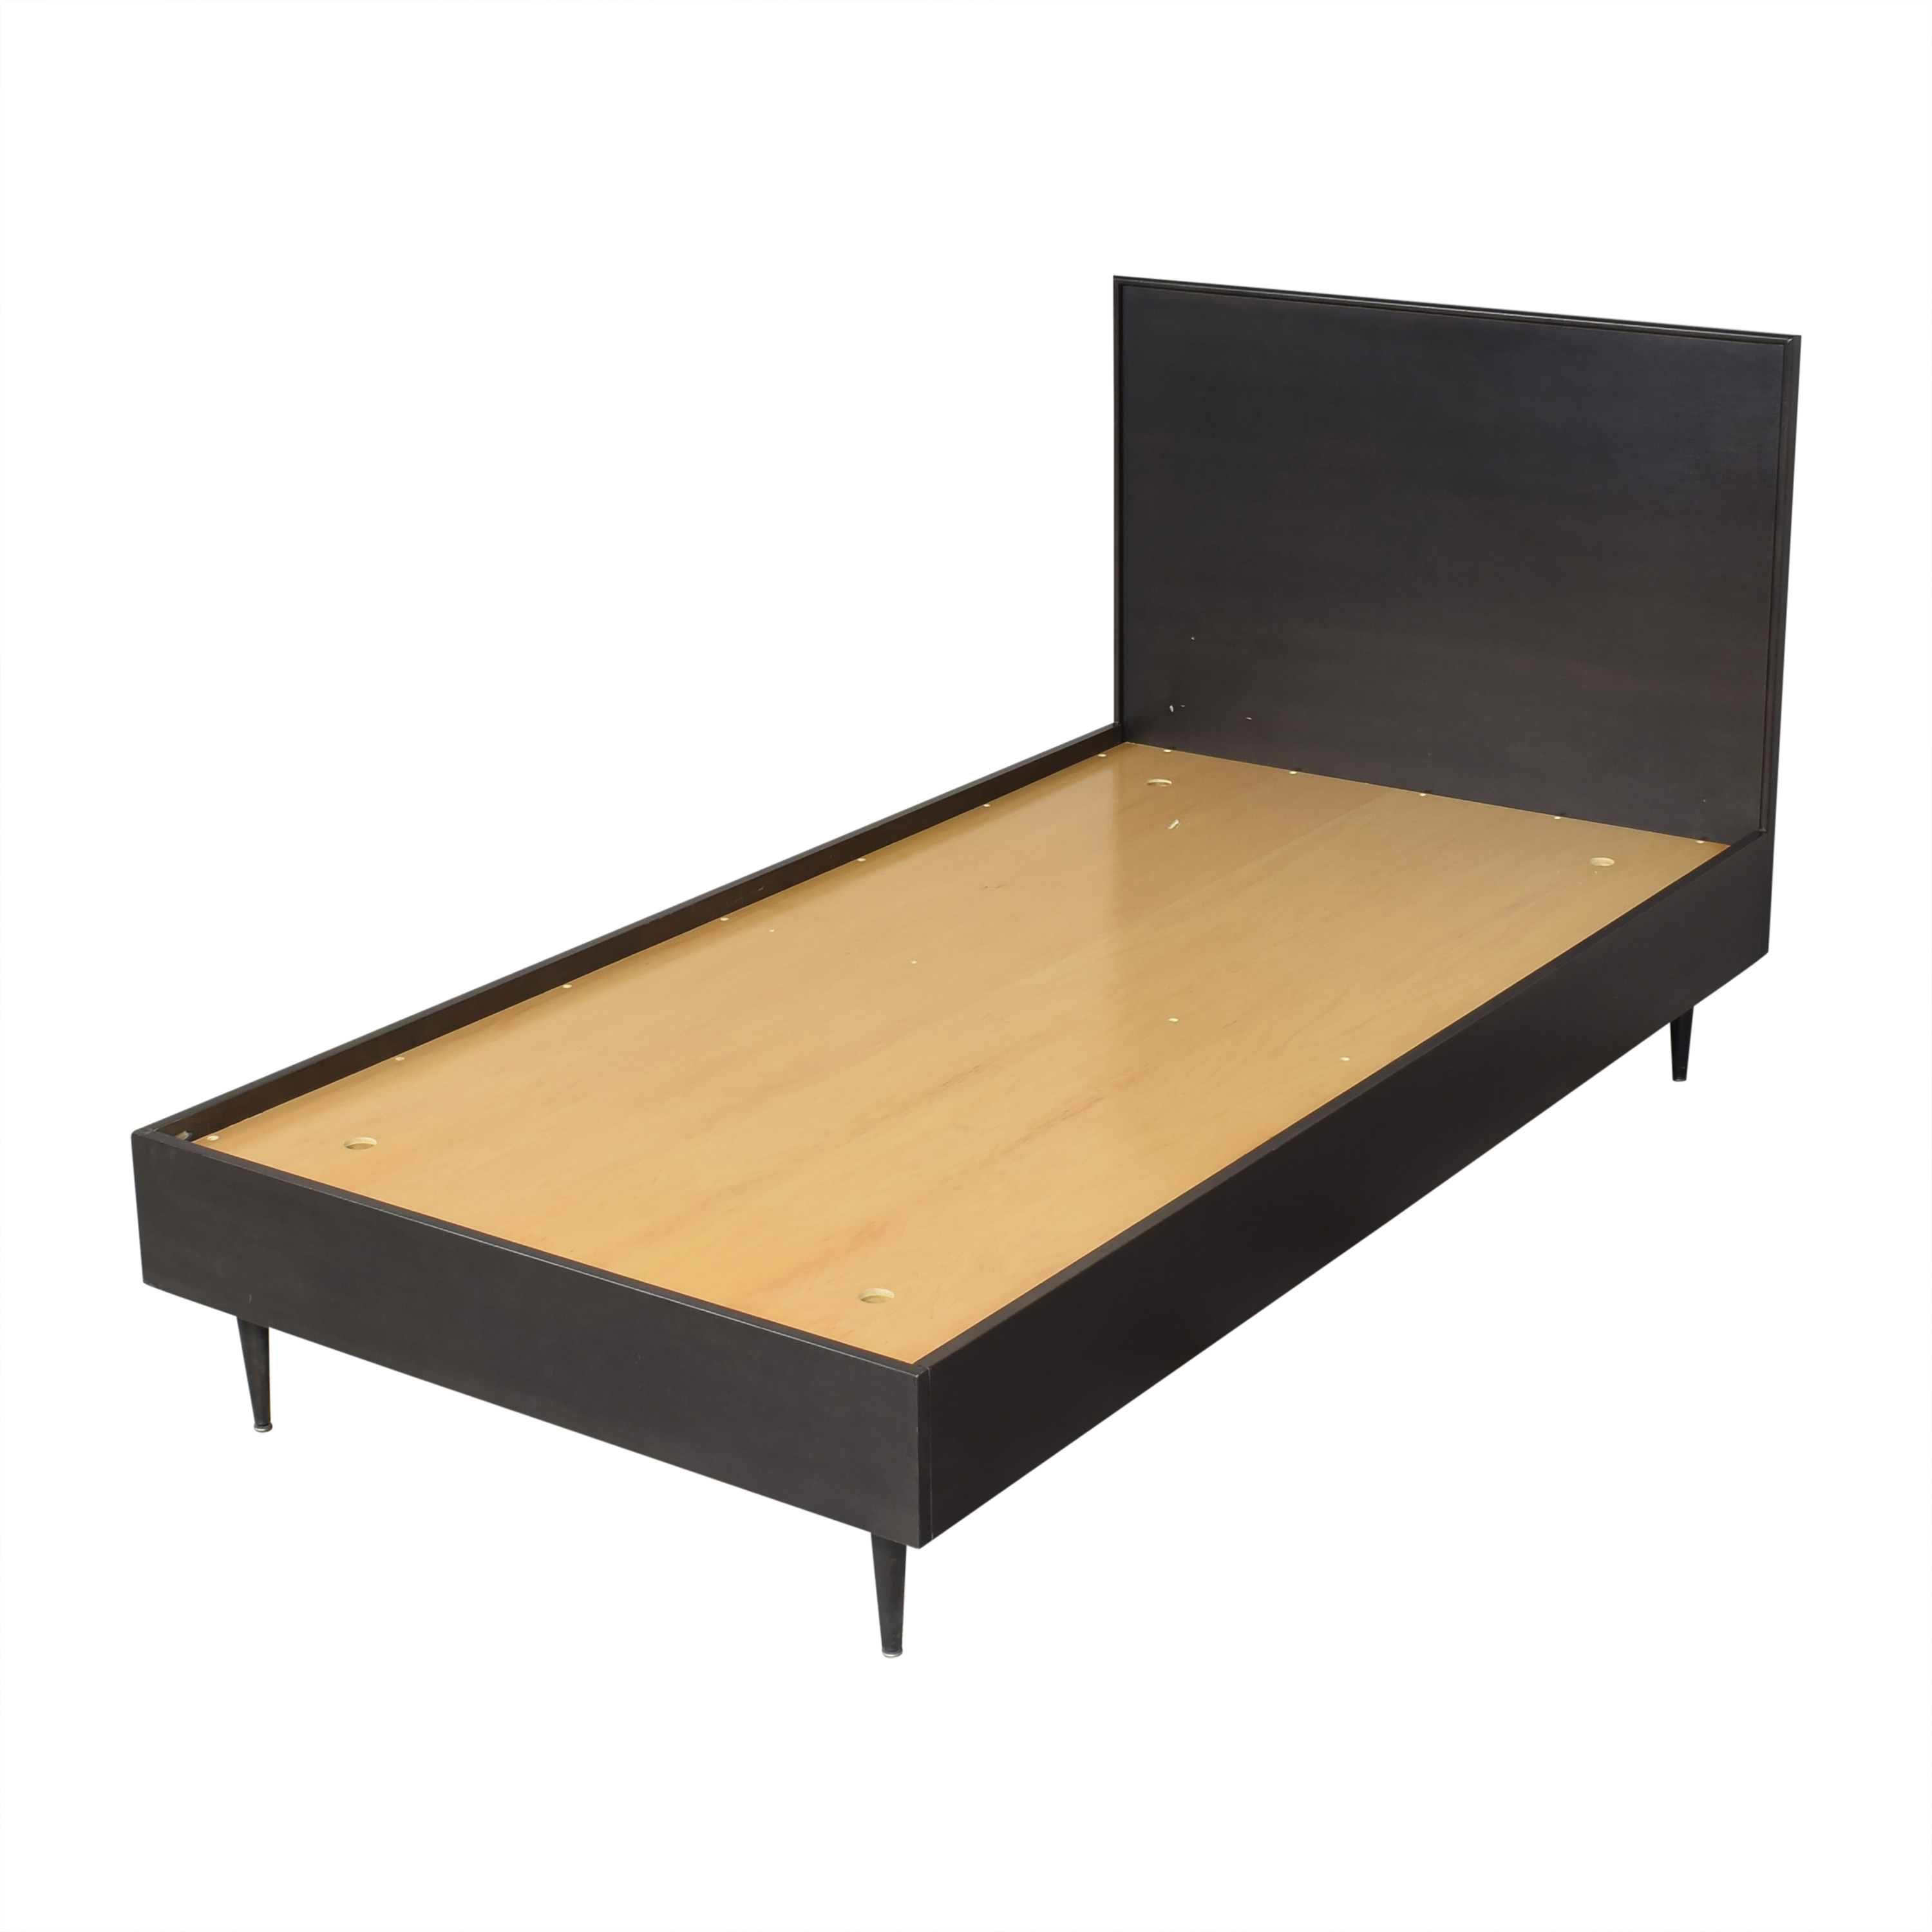 49 Off Urbangreen Furniture Urbangreen Furniture Mid Century Modern Twin Bed Beds